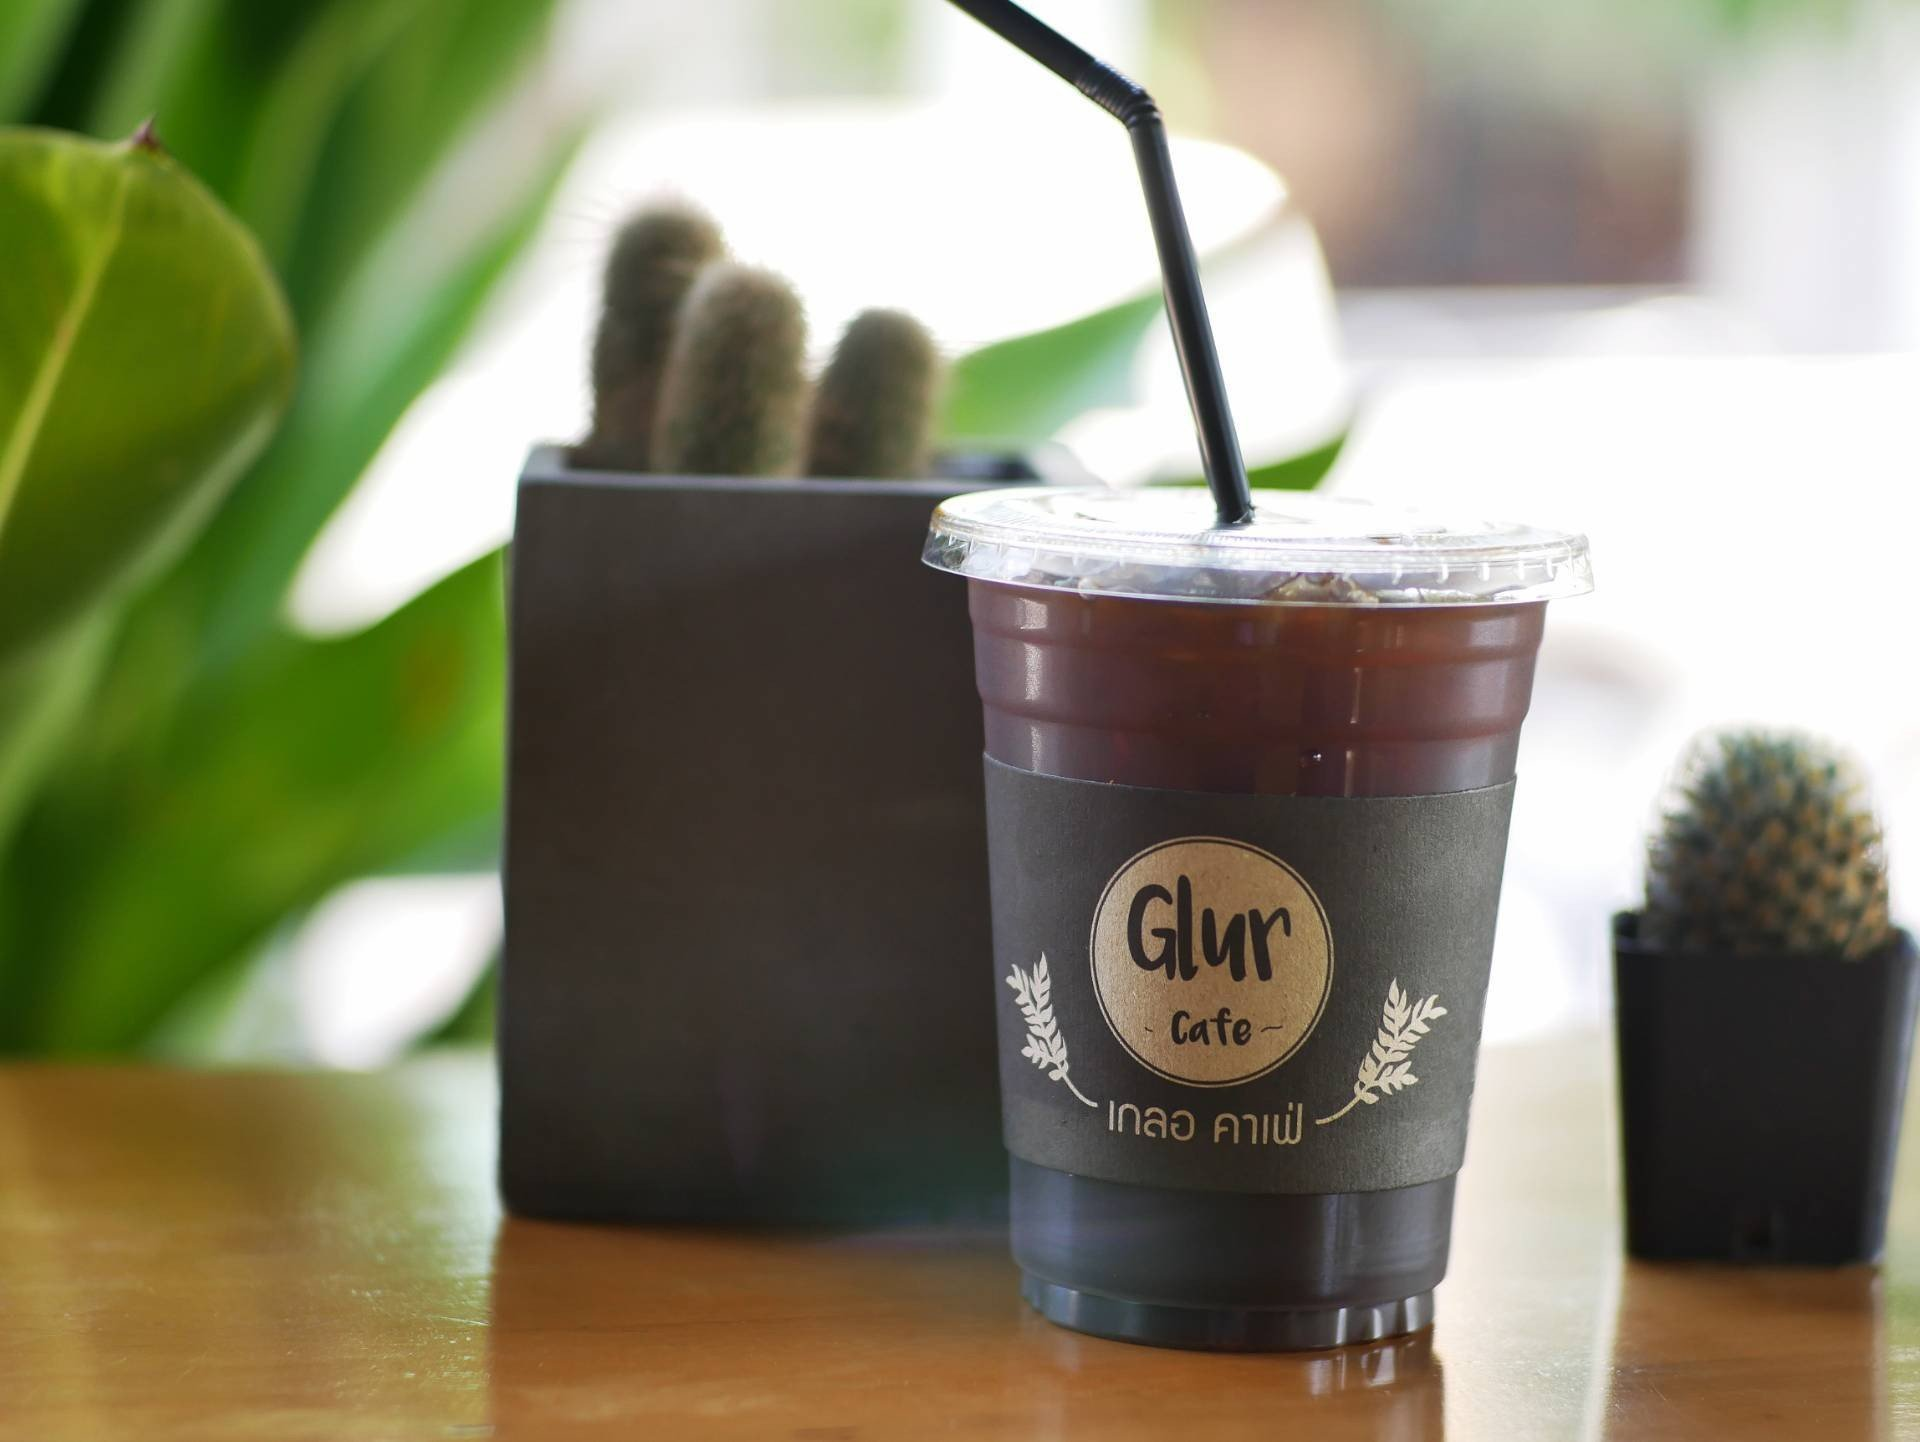 Glur Cafe Rangsit